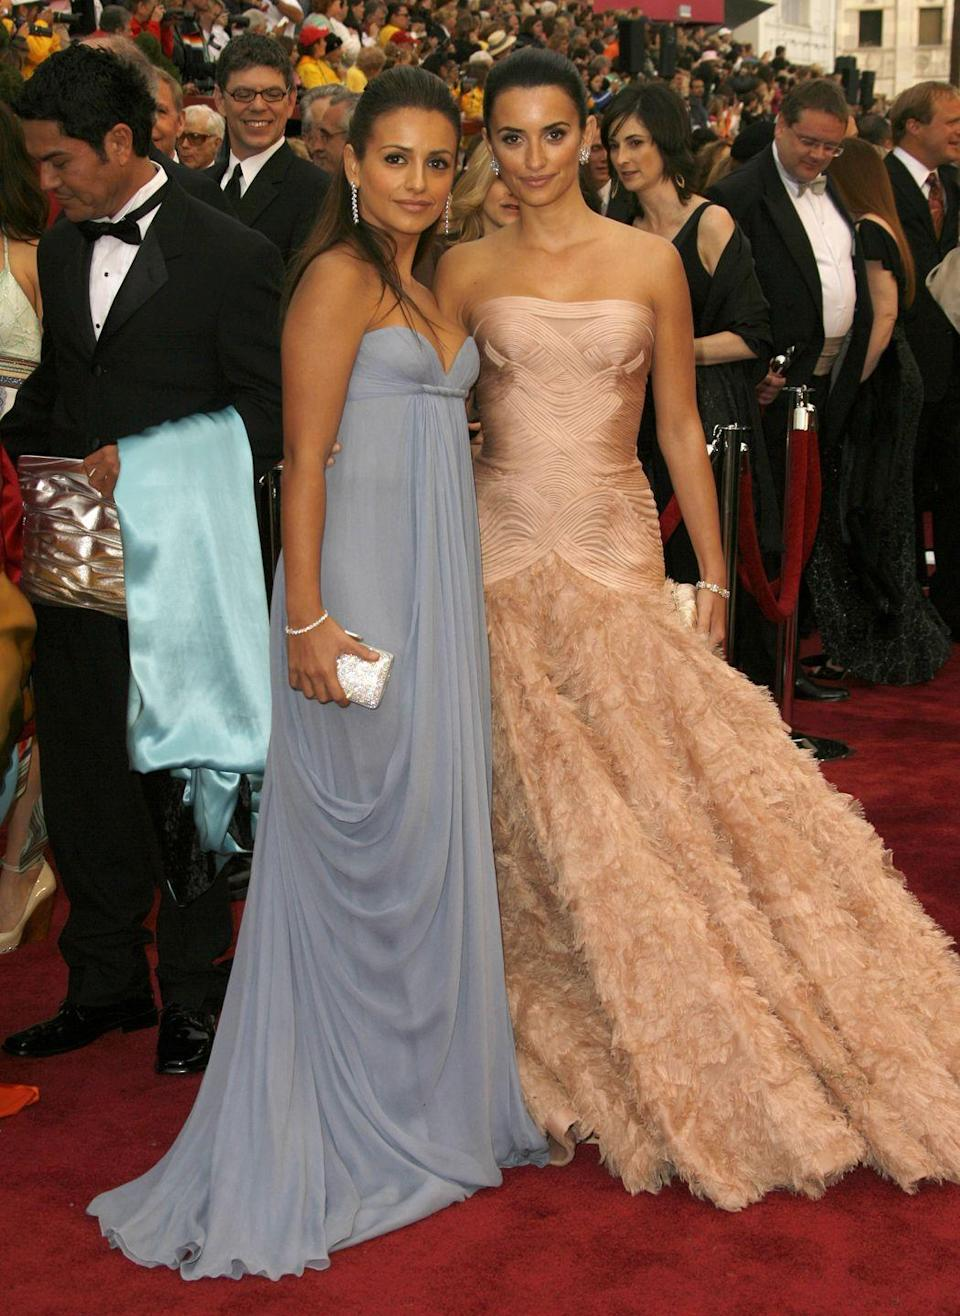 <p>If you didn't know Penelope Cruz had a sister, you might confuse Monica for her if you passed her on the street. Monica is an actress in their native country, Spain, and walked the red carpet with Penelope when she was nominated for an Oscar. </p>